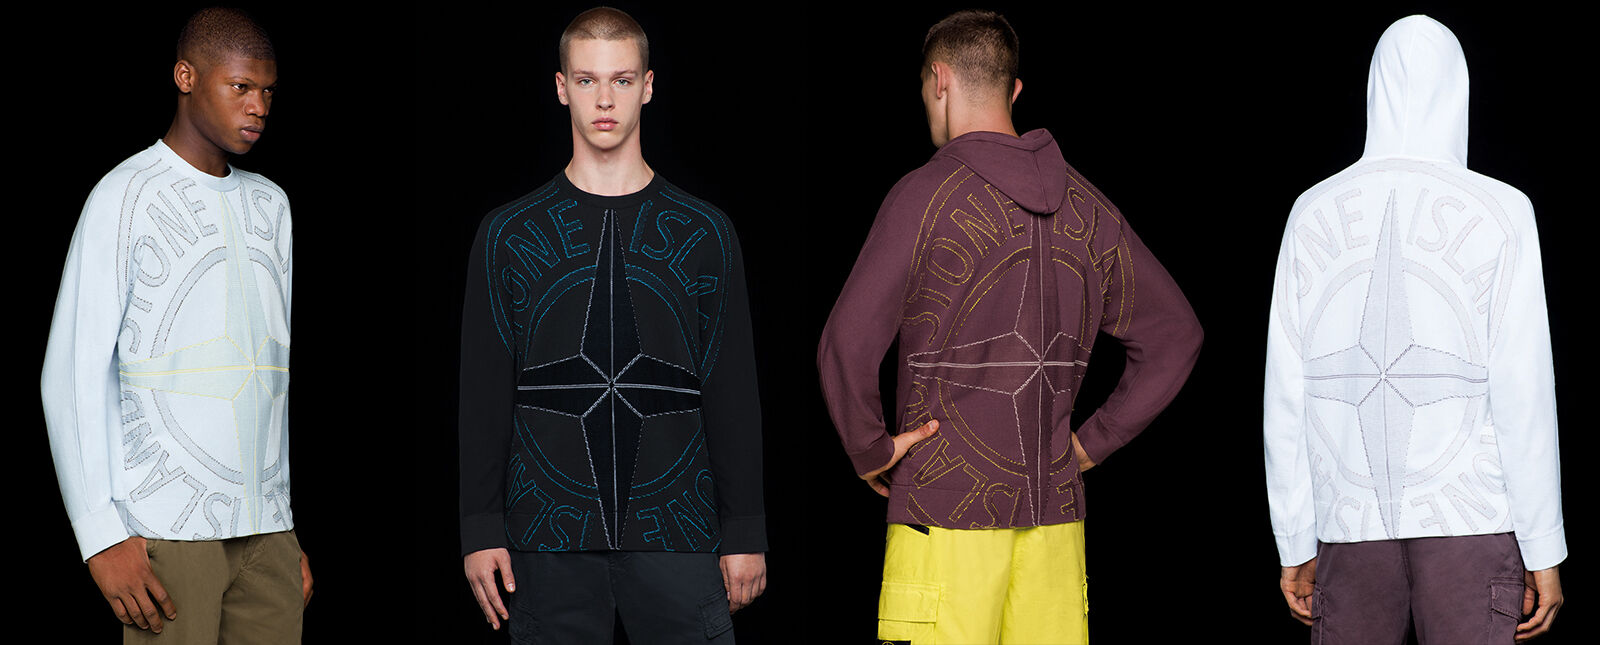 Four models wearing pants in different styles and colors, two of them wearing a crewneck t shirt with long sleeves and a large Stone Island compass rose logo embroidery on the front, the other two showing the same embroidery on the back of hooded sweatshi